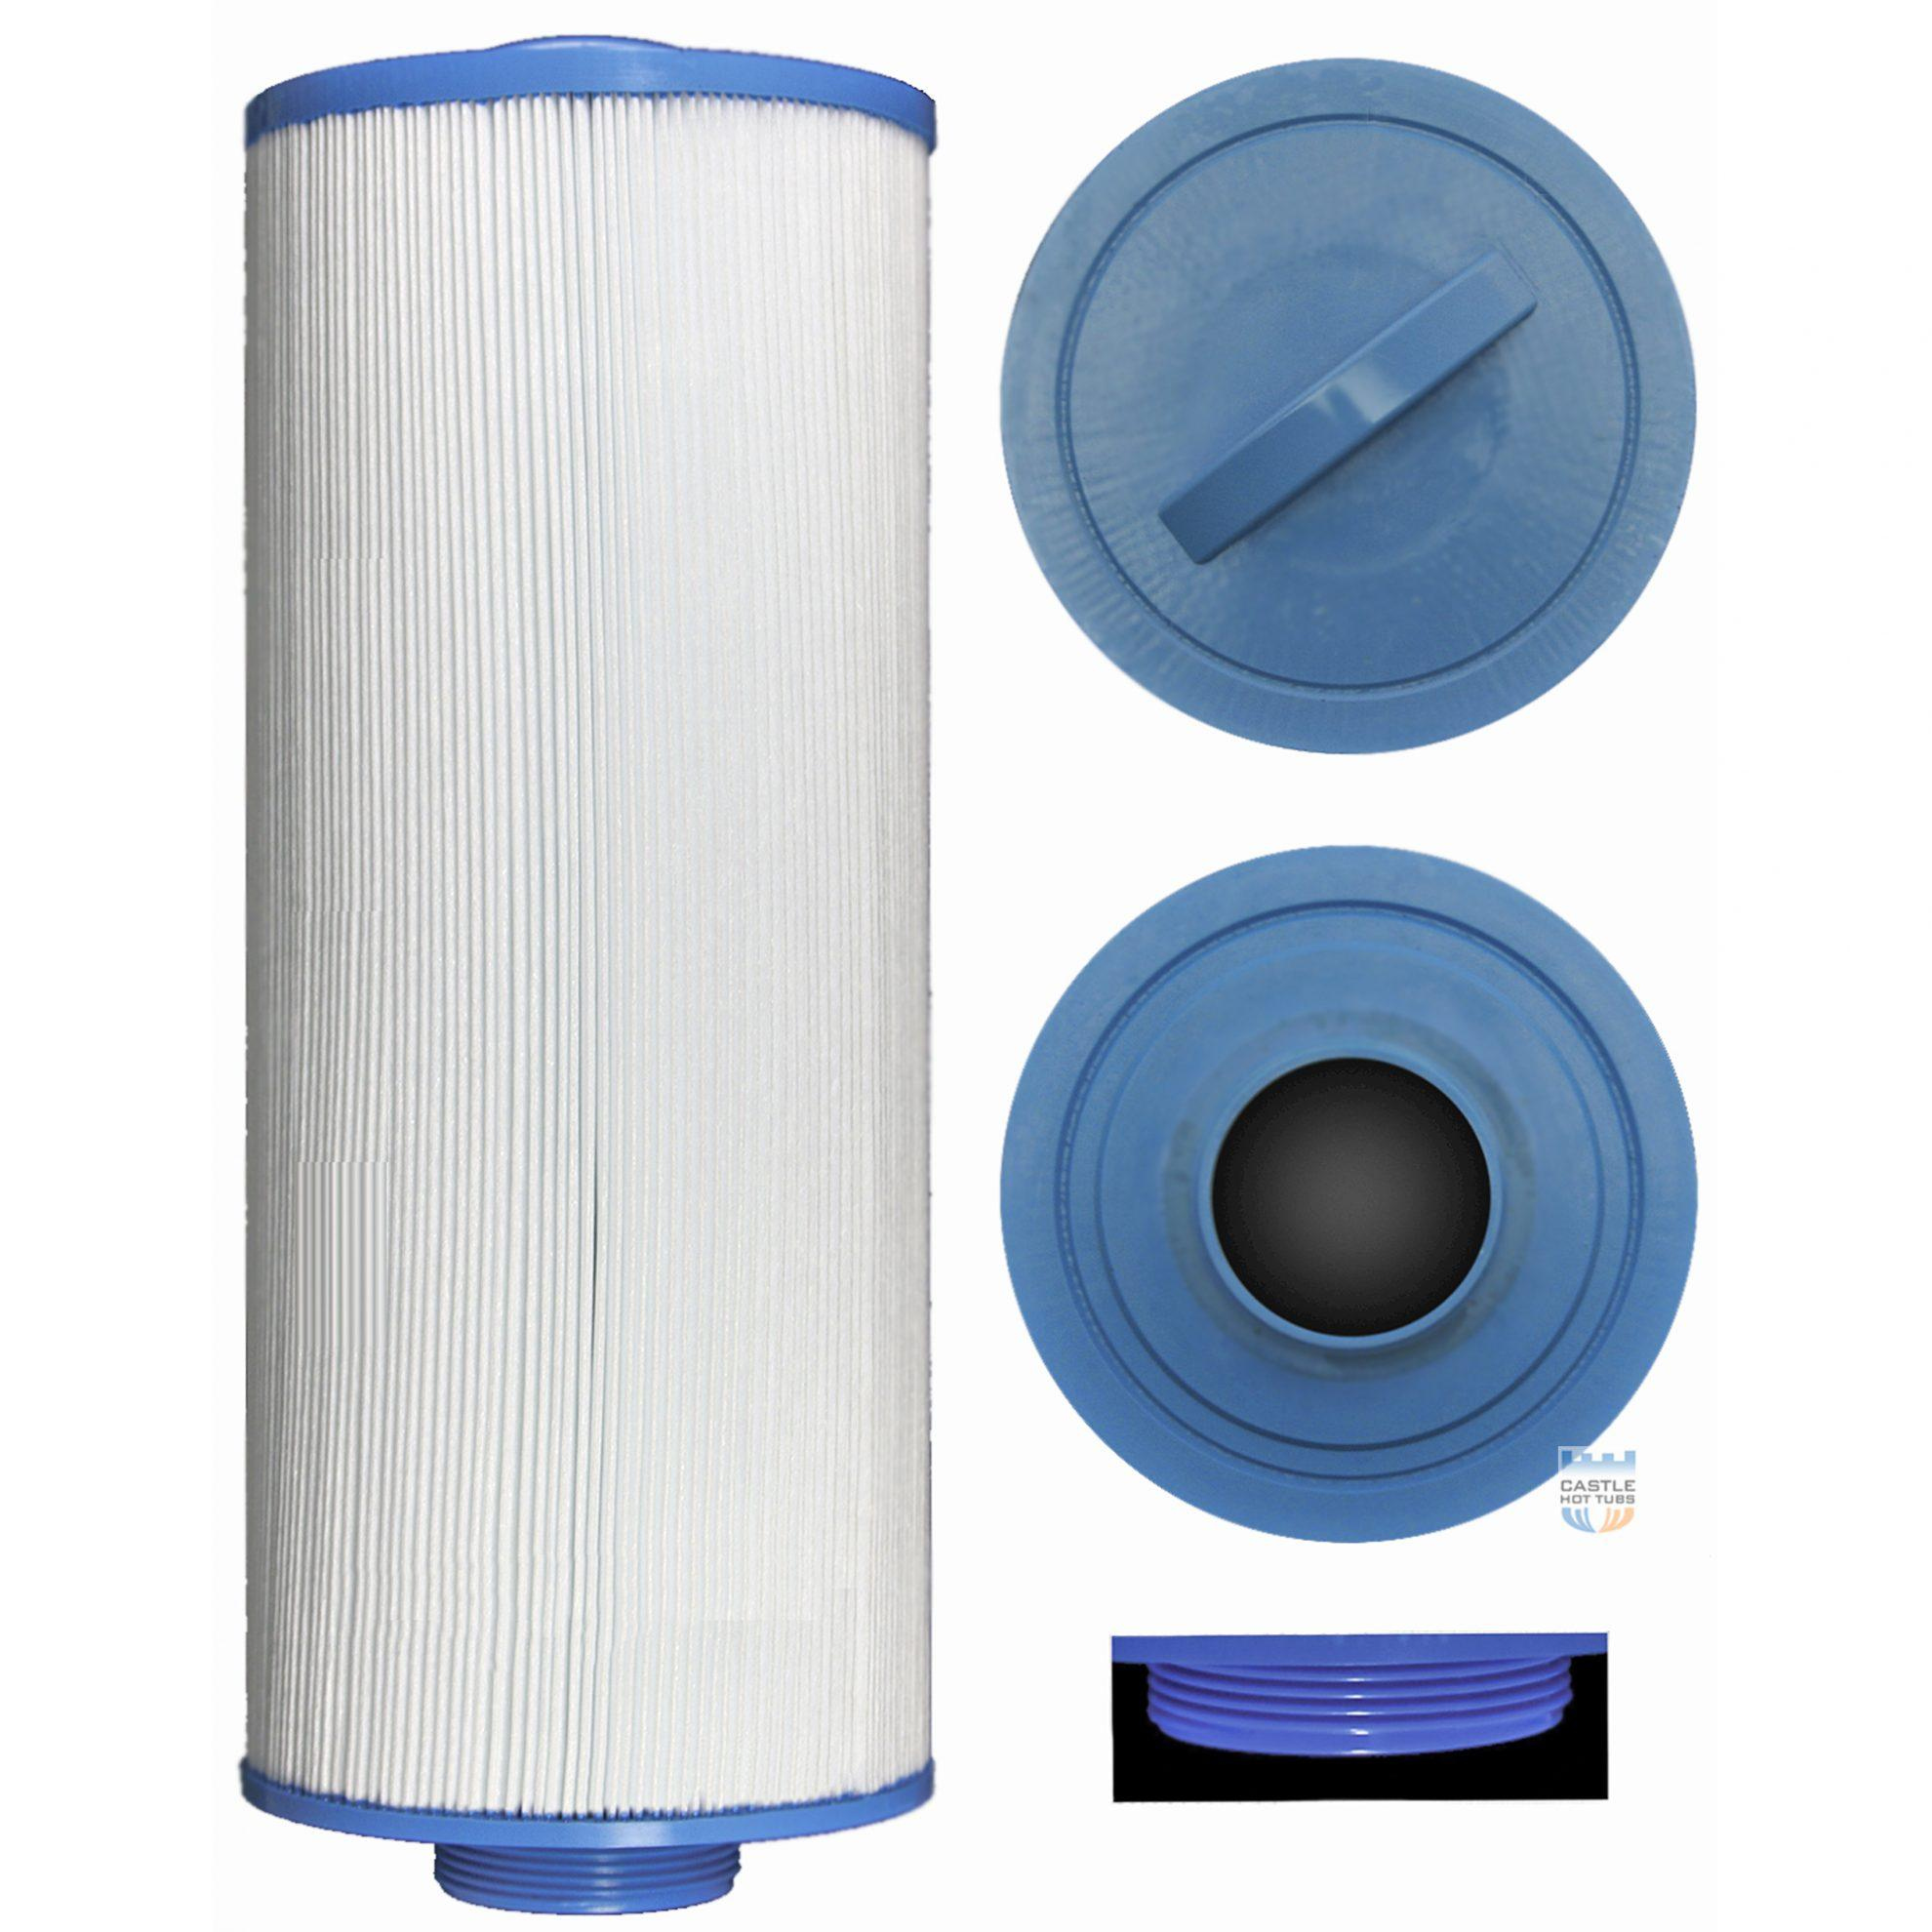 Jacuzzi Replacement Pool Filter Cartridge 5ch352 Hot Tub Filter Spa Replacement Filter Cartridge